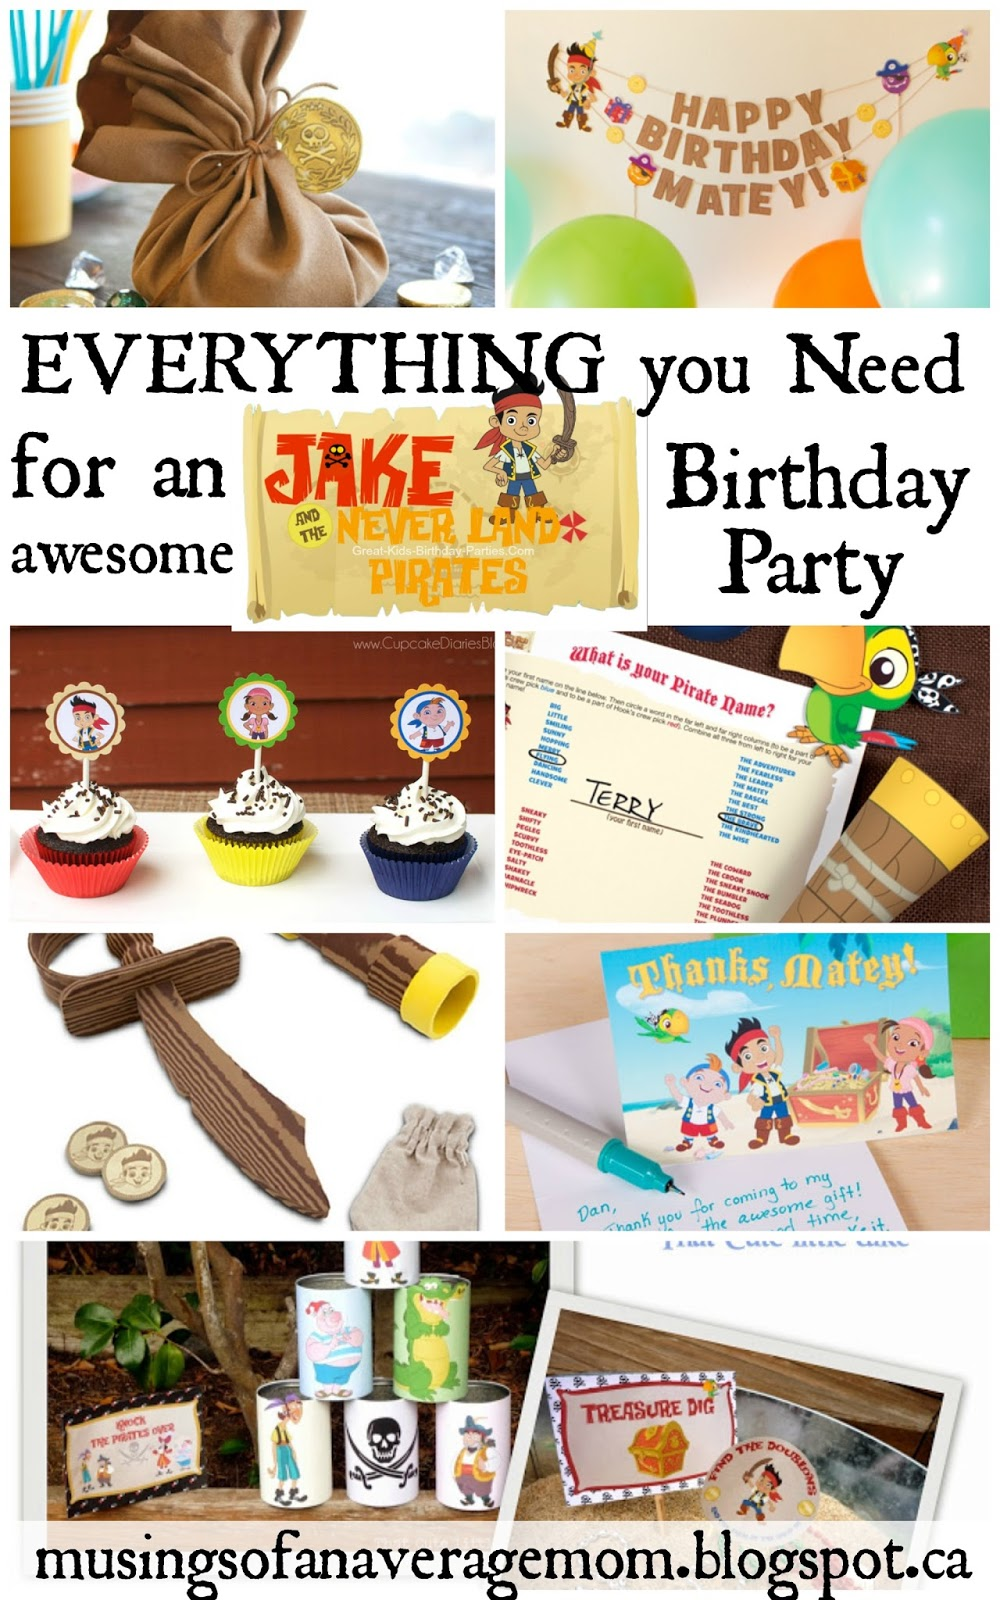 Musings of an Average Mom: Free Printable Jake Party